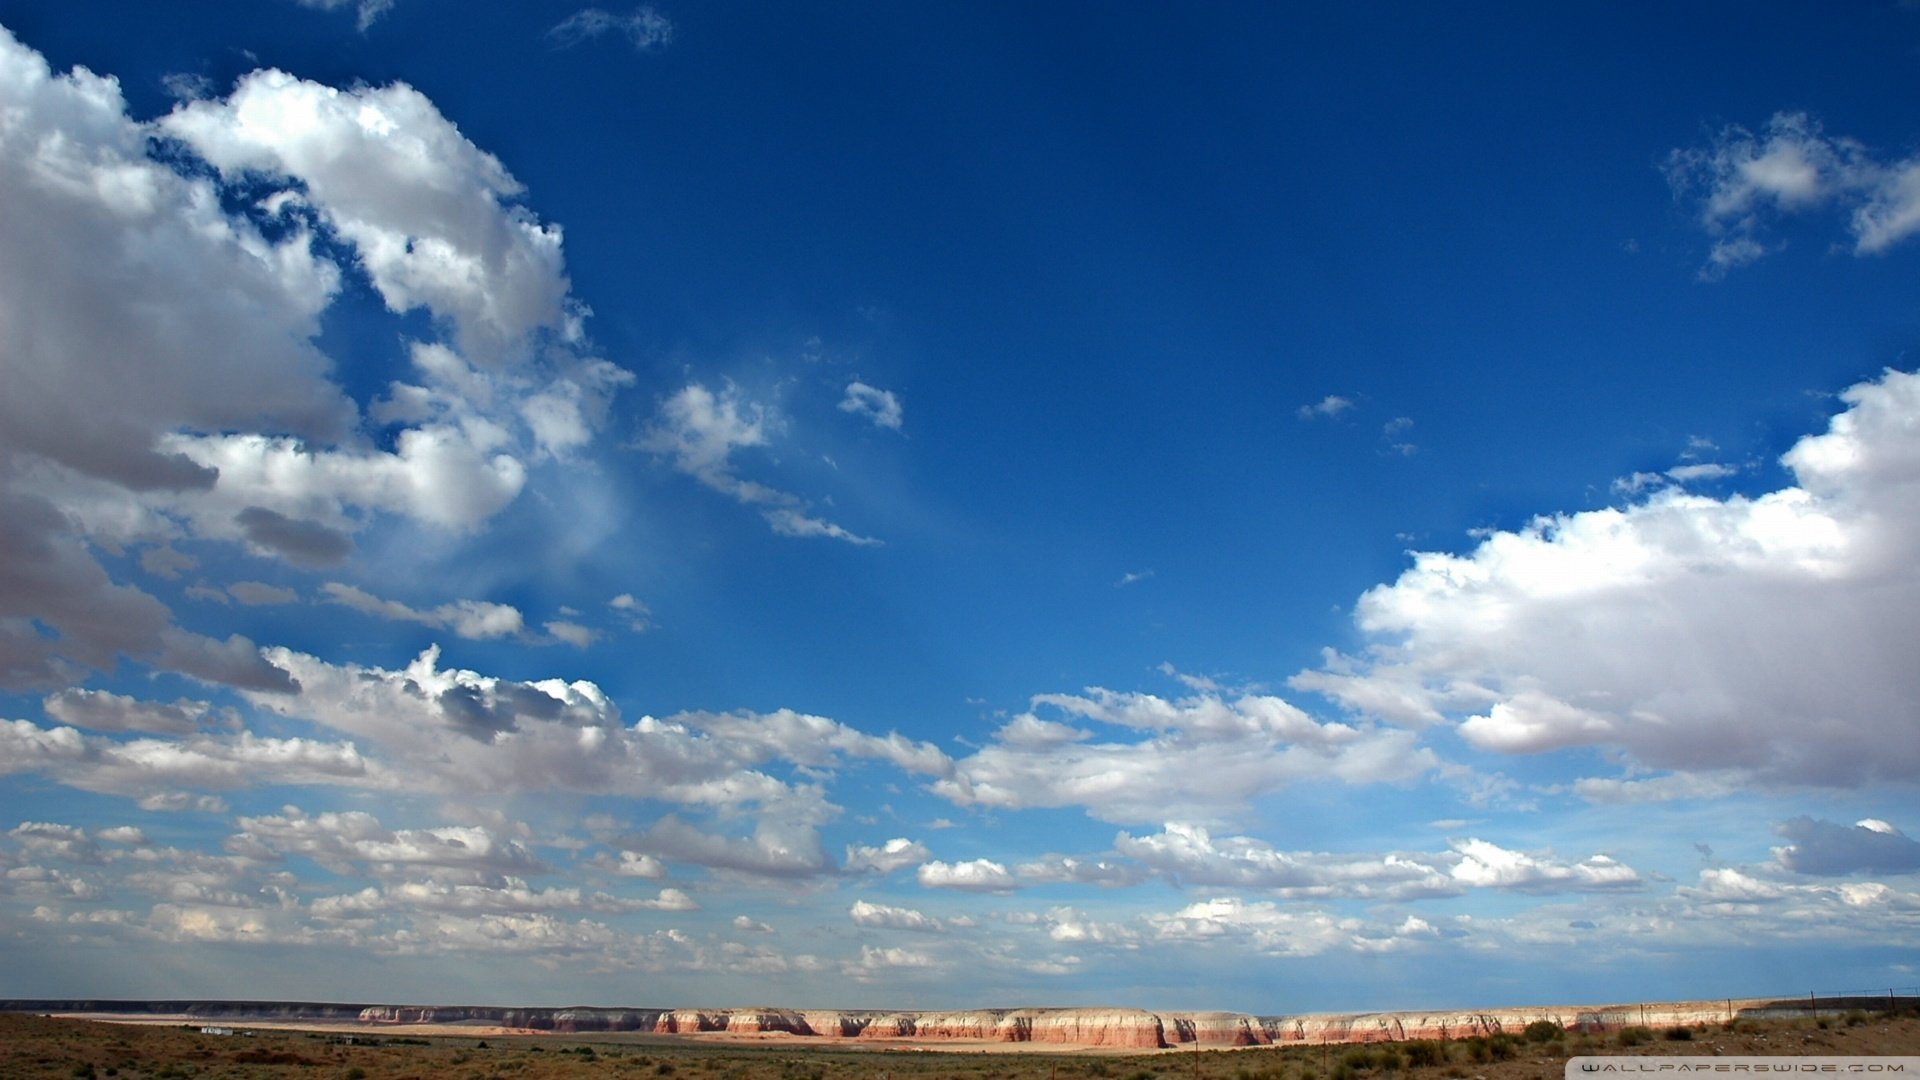 [44+] Blue Sky with Clouds Wallpaper on WallpaperSafari